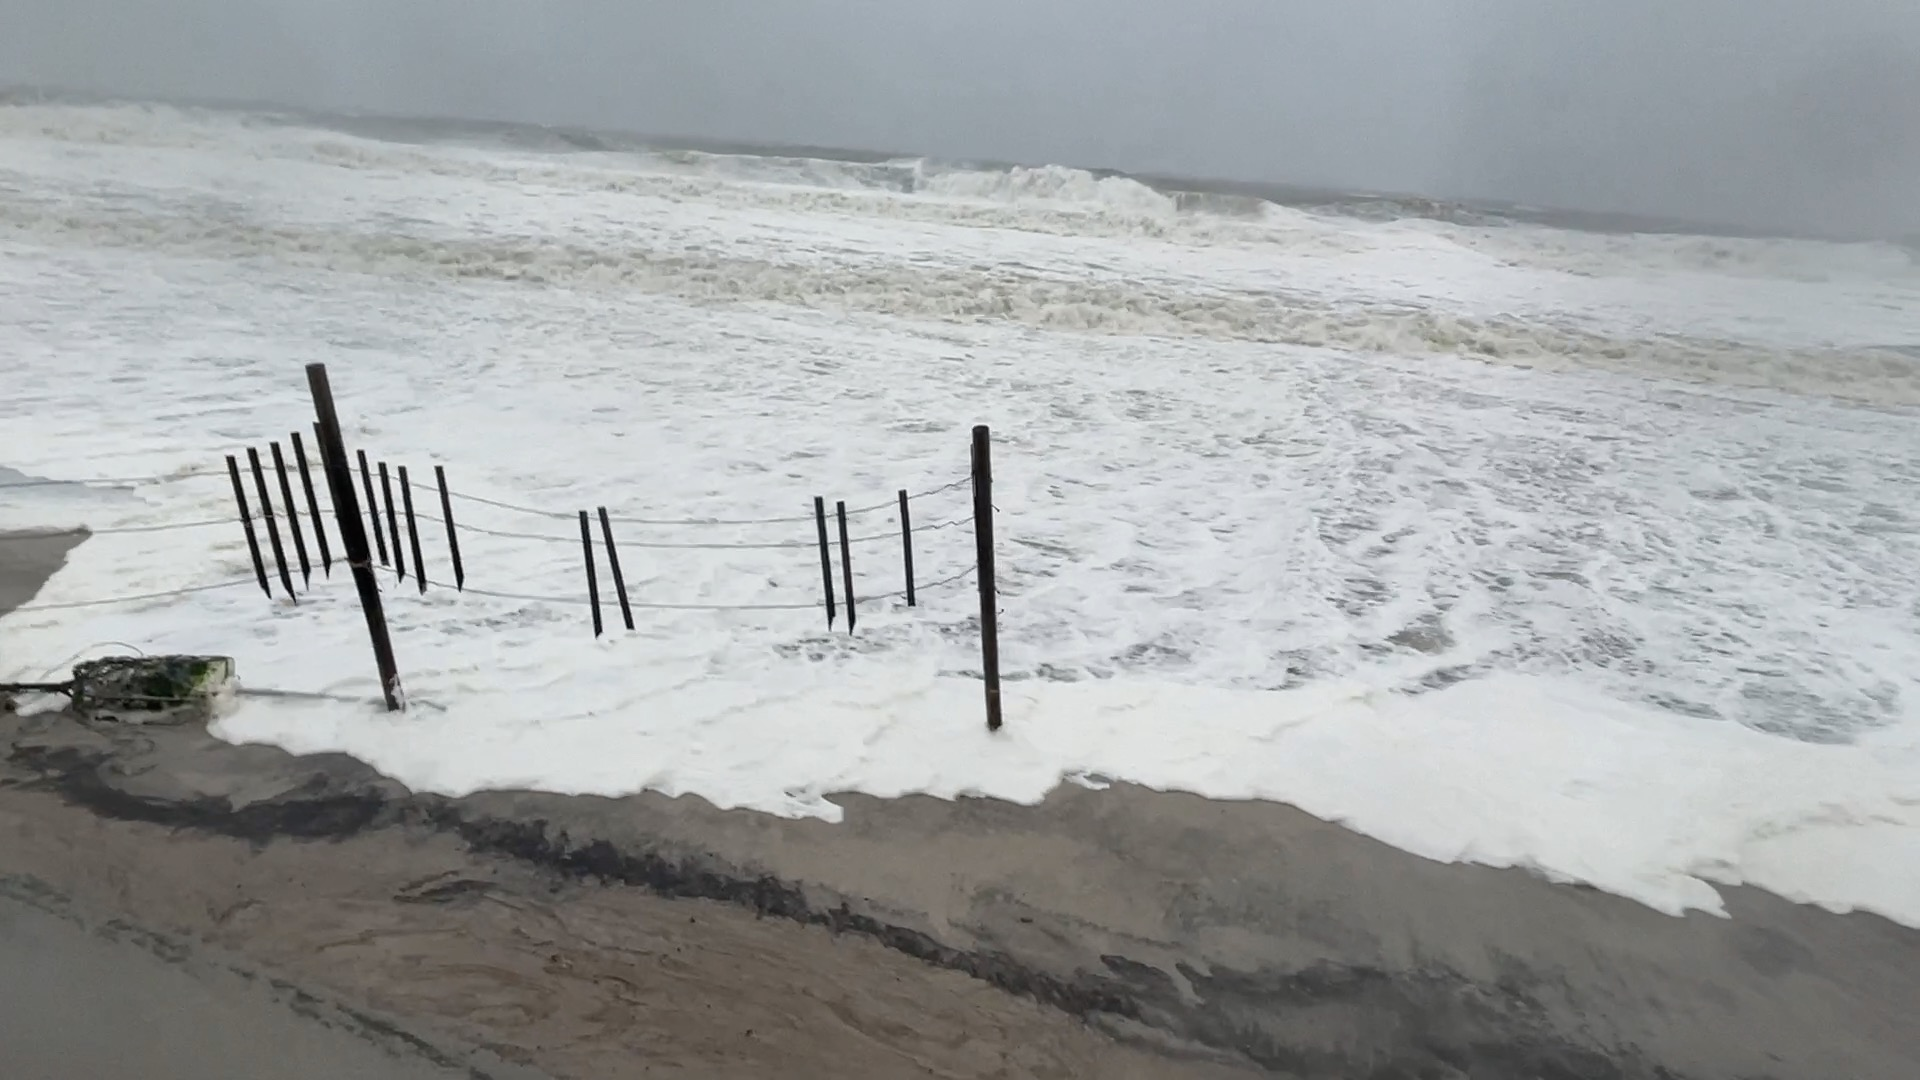 Ocean water laps at the dunes in Ortley Beach during the Feb. 1-2 nor'easter, 2021. (Photo: Daniel Nee)